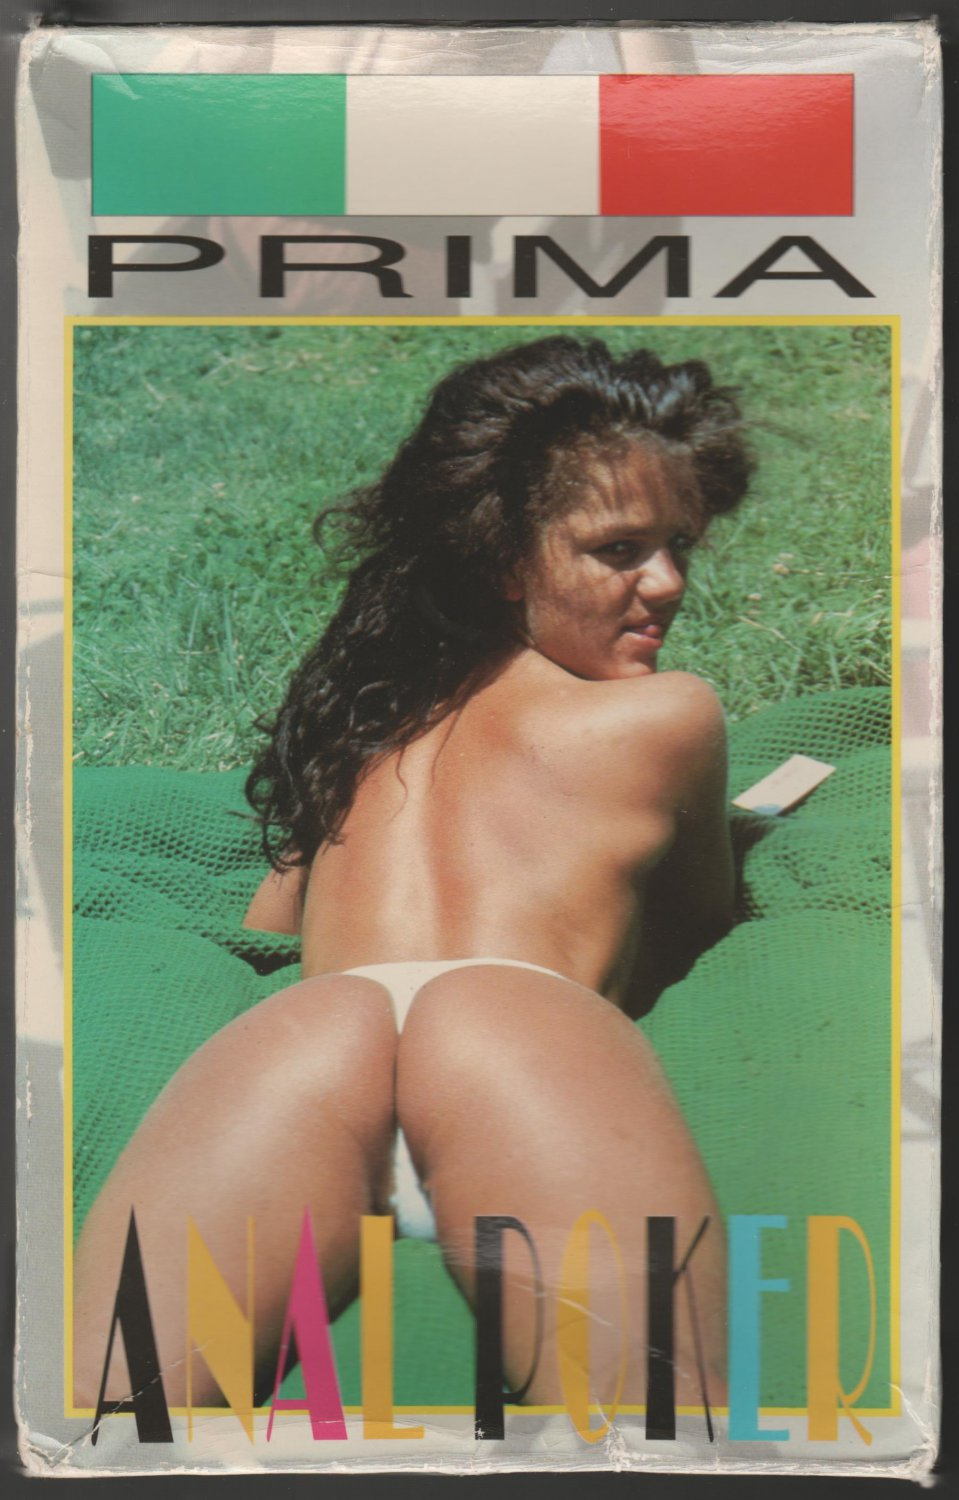 PRIMA ANAL POKER (Adult VHS XXX) JET SET ORAL COCK CUNTS CUM TITTIES MUST SEE